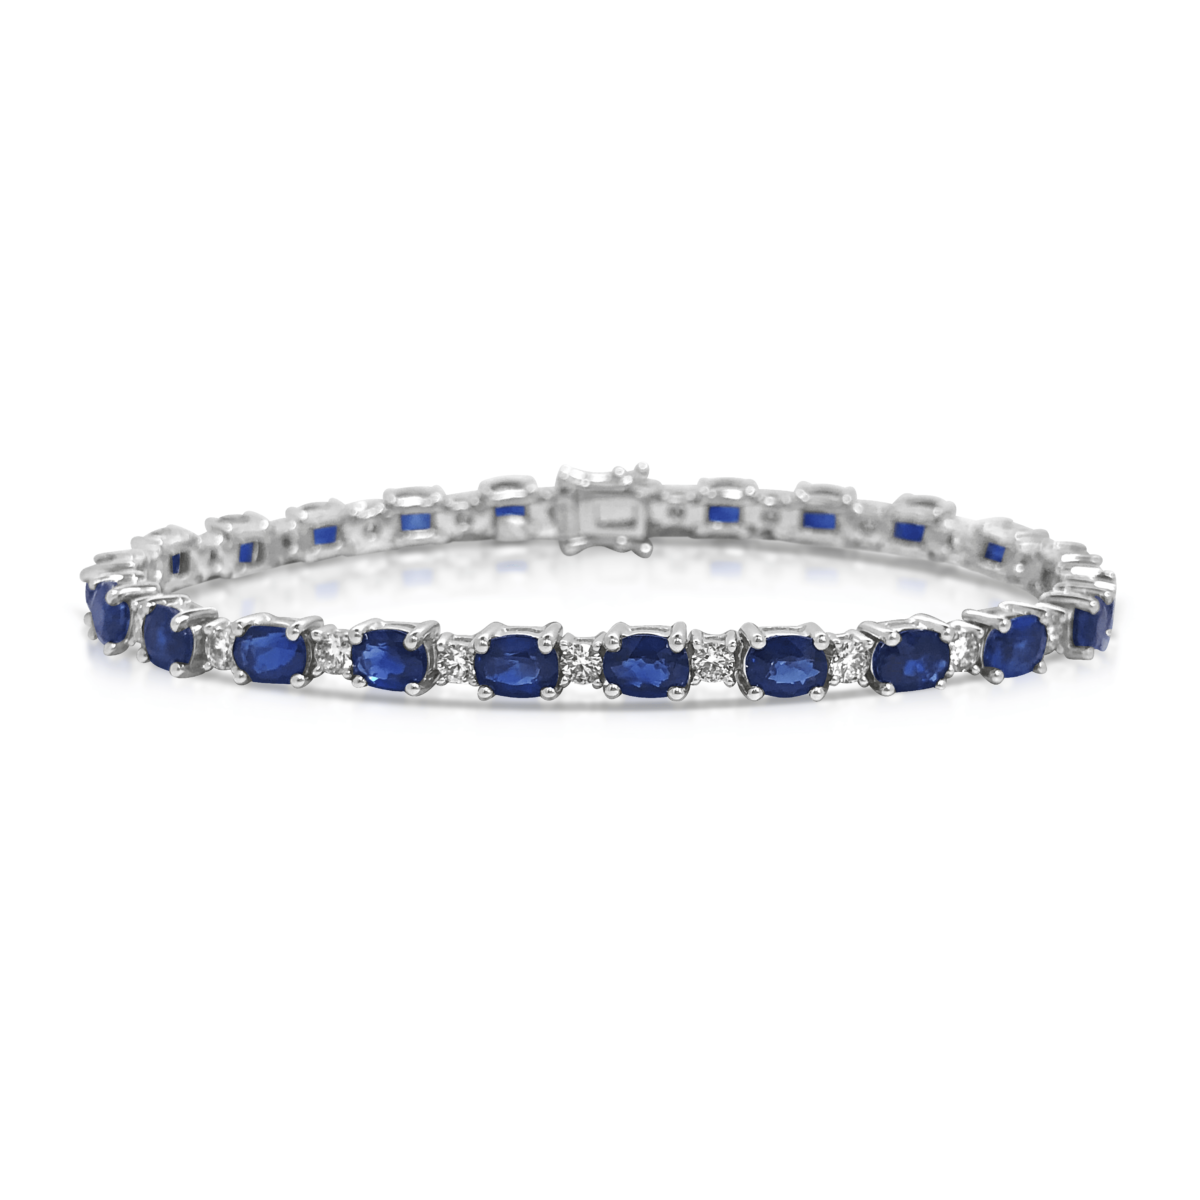 Dalila Sapphire and Diamond Tennis Bracelet